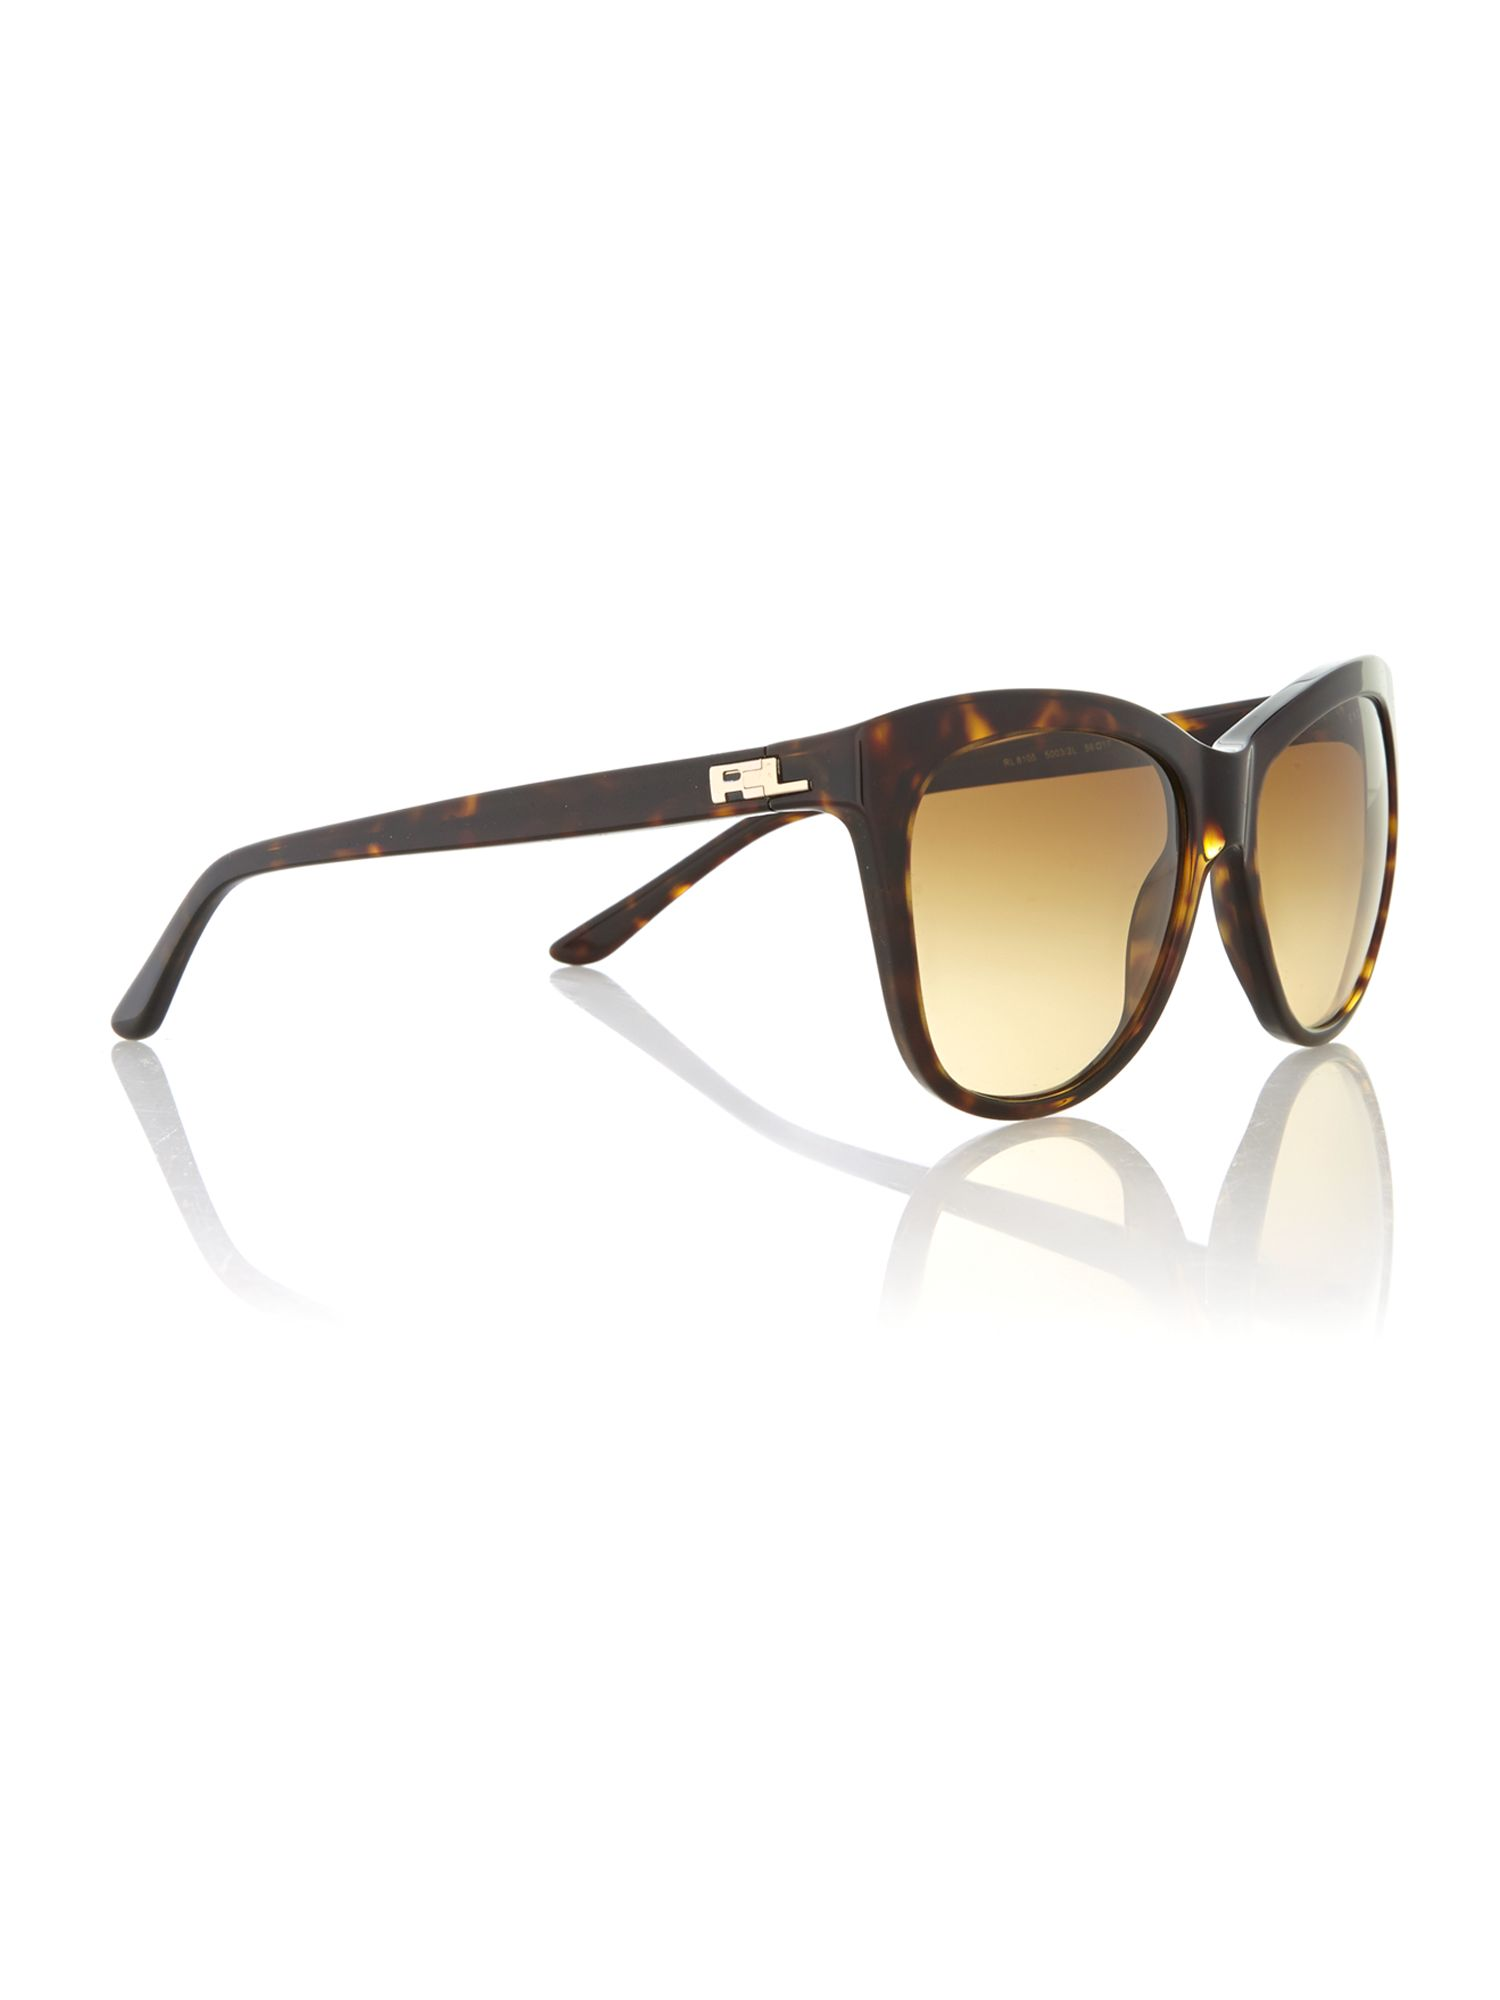 Dark havana acetate sunglasses